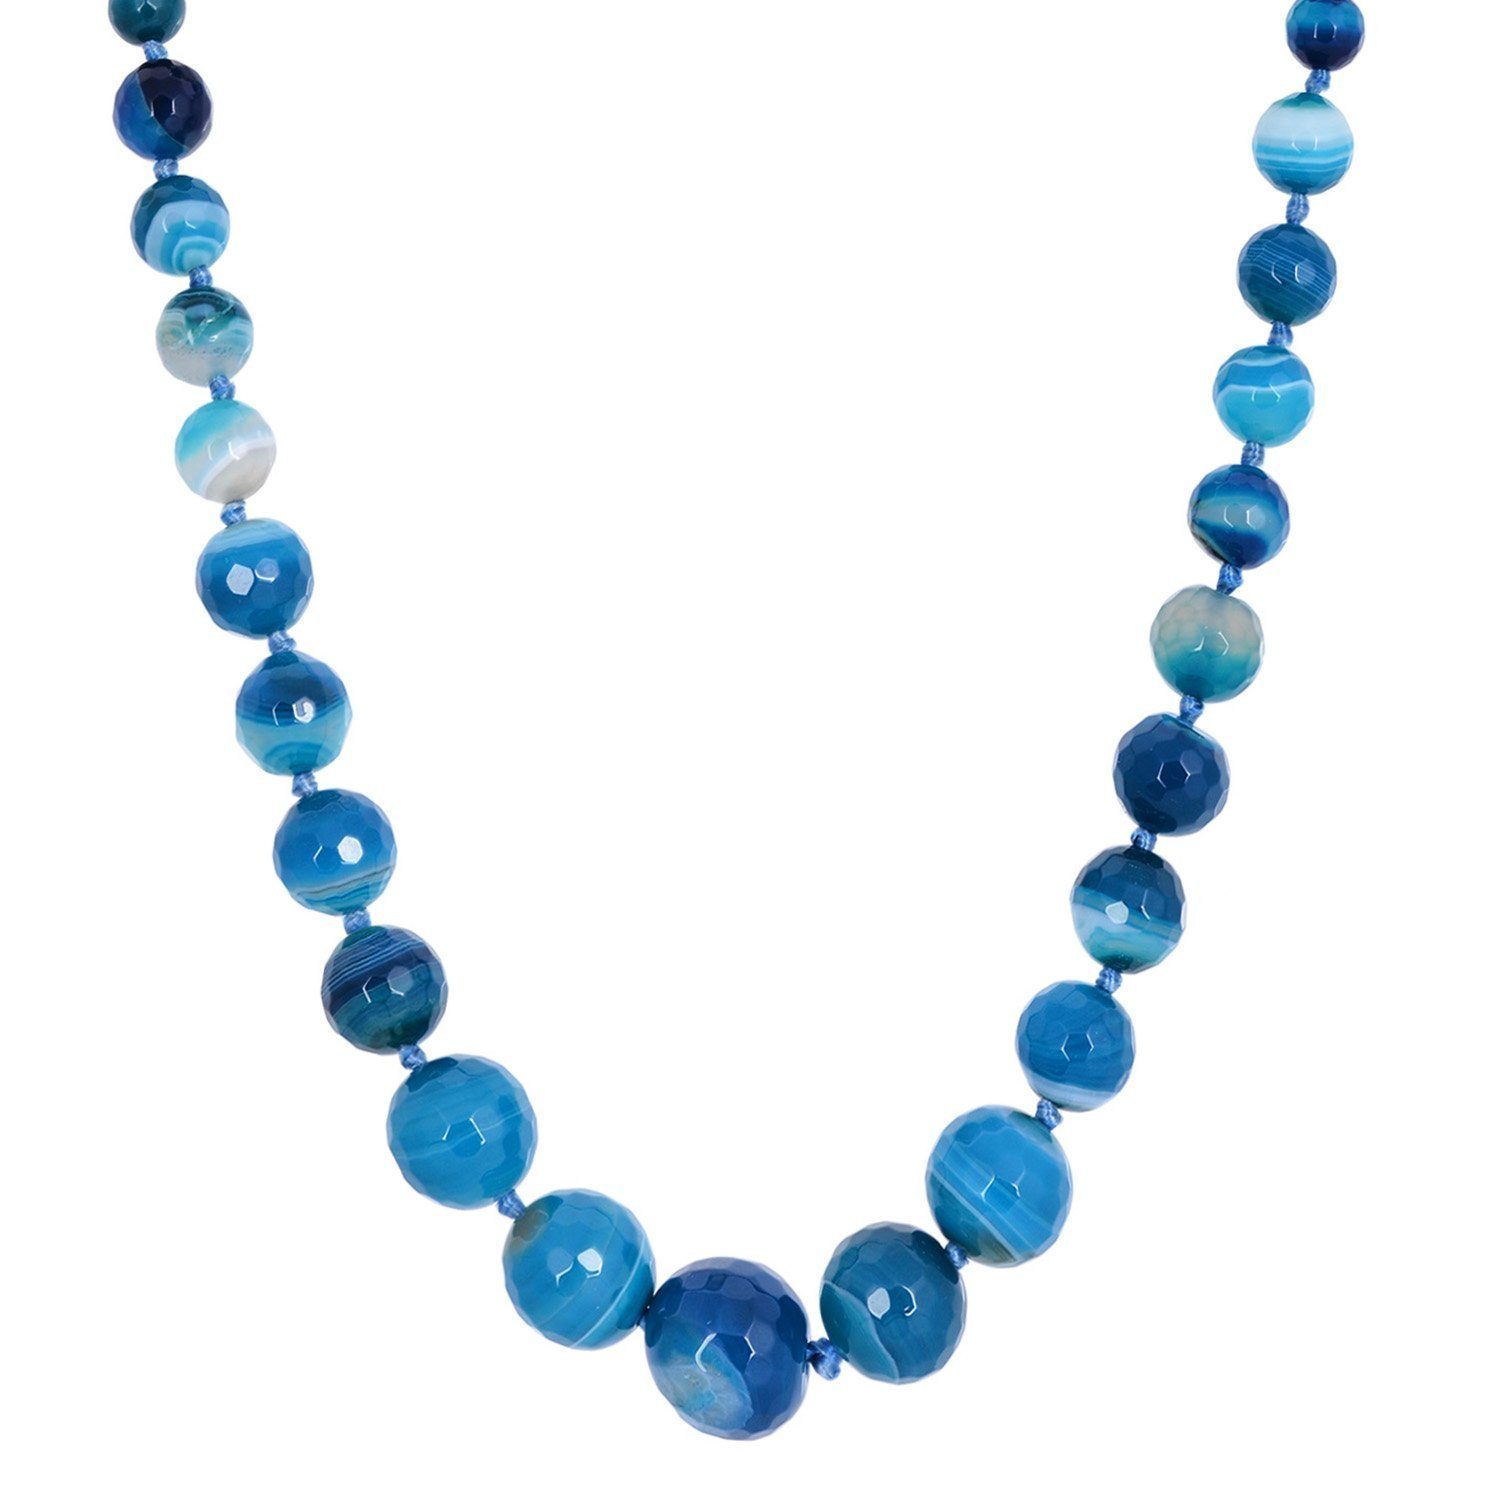 s claire beads confetti us necklace pendant blue shaker bead